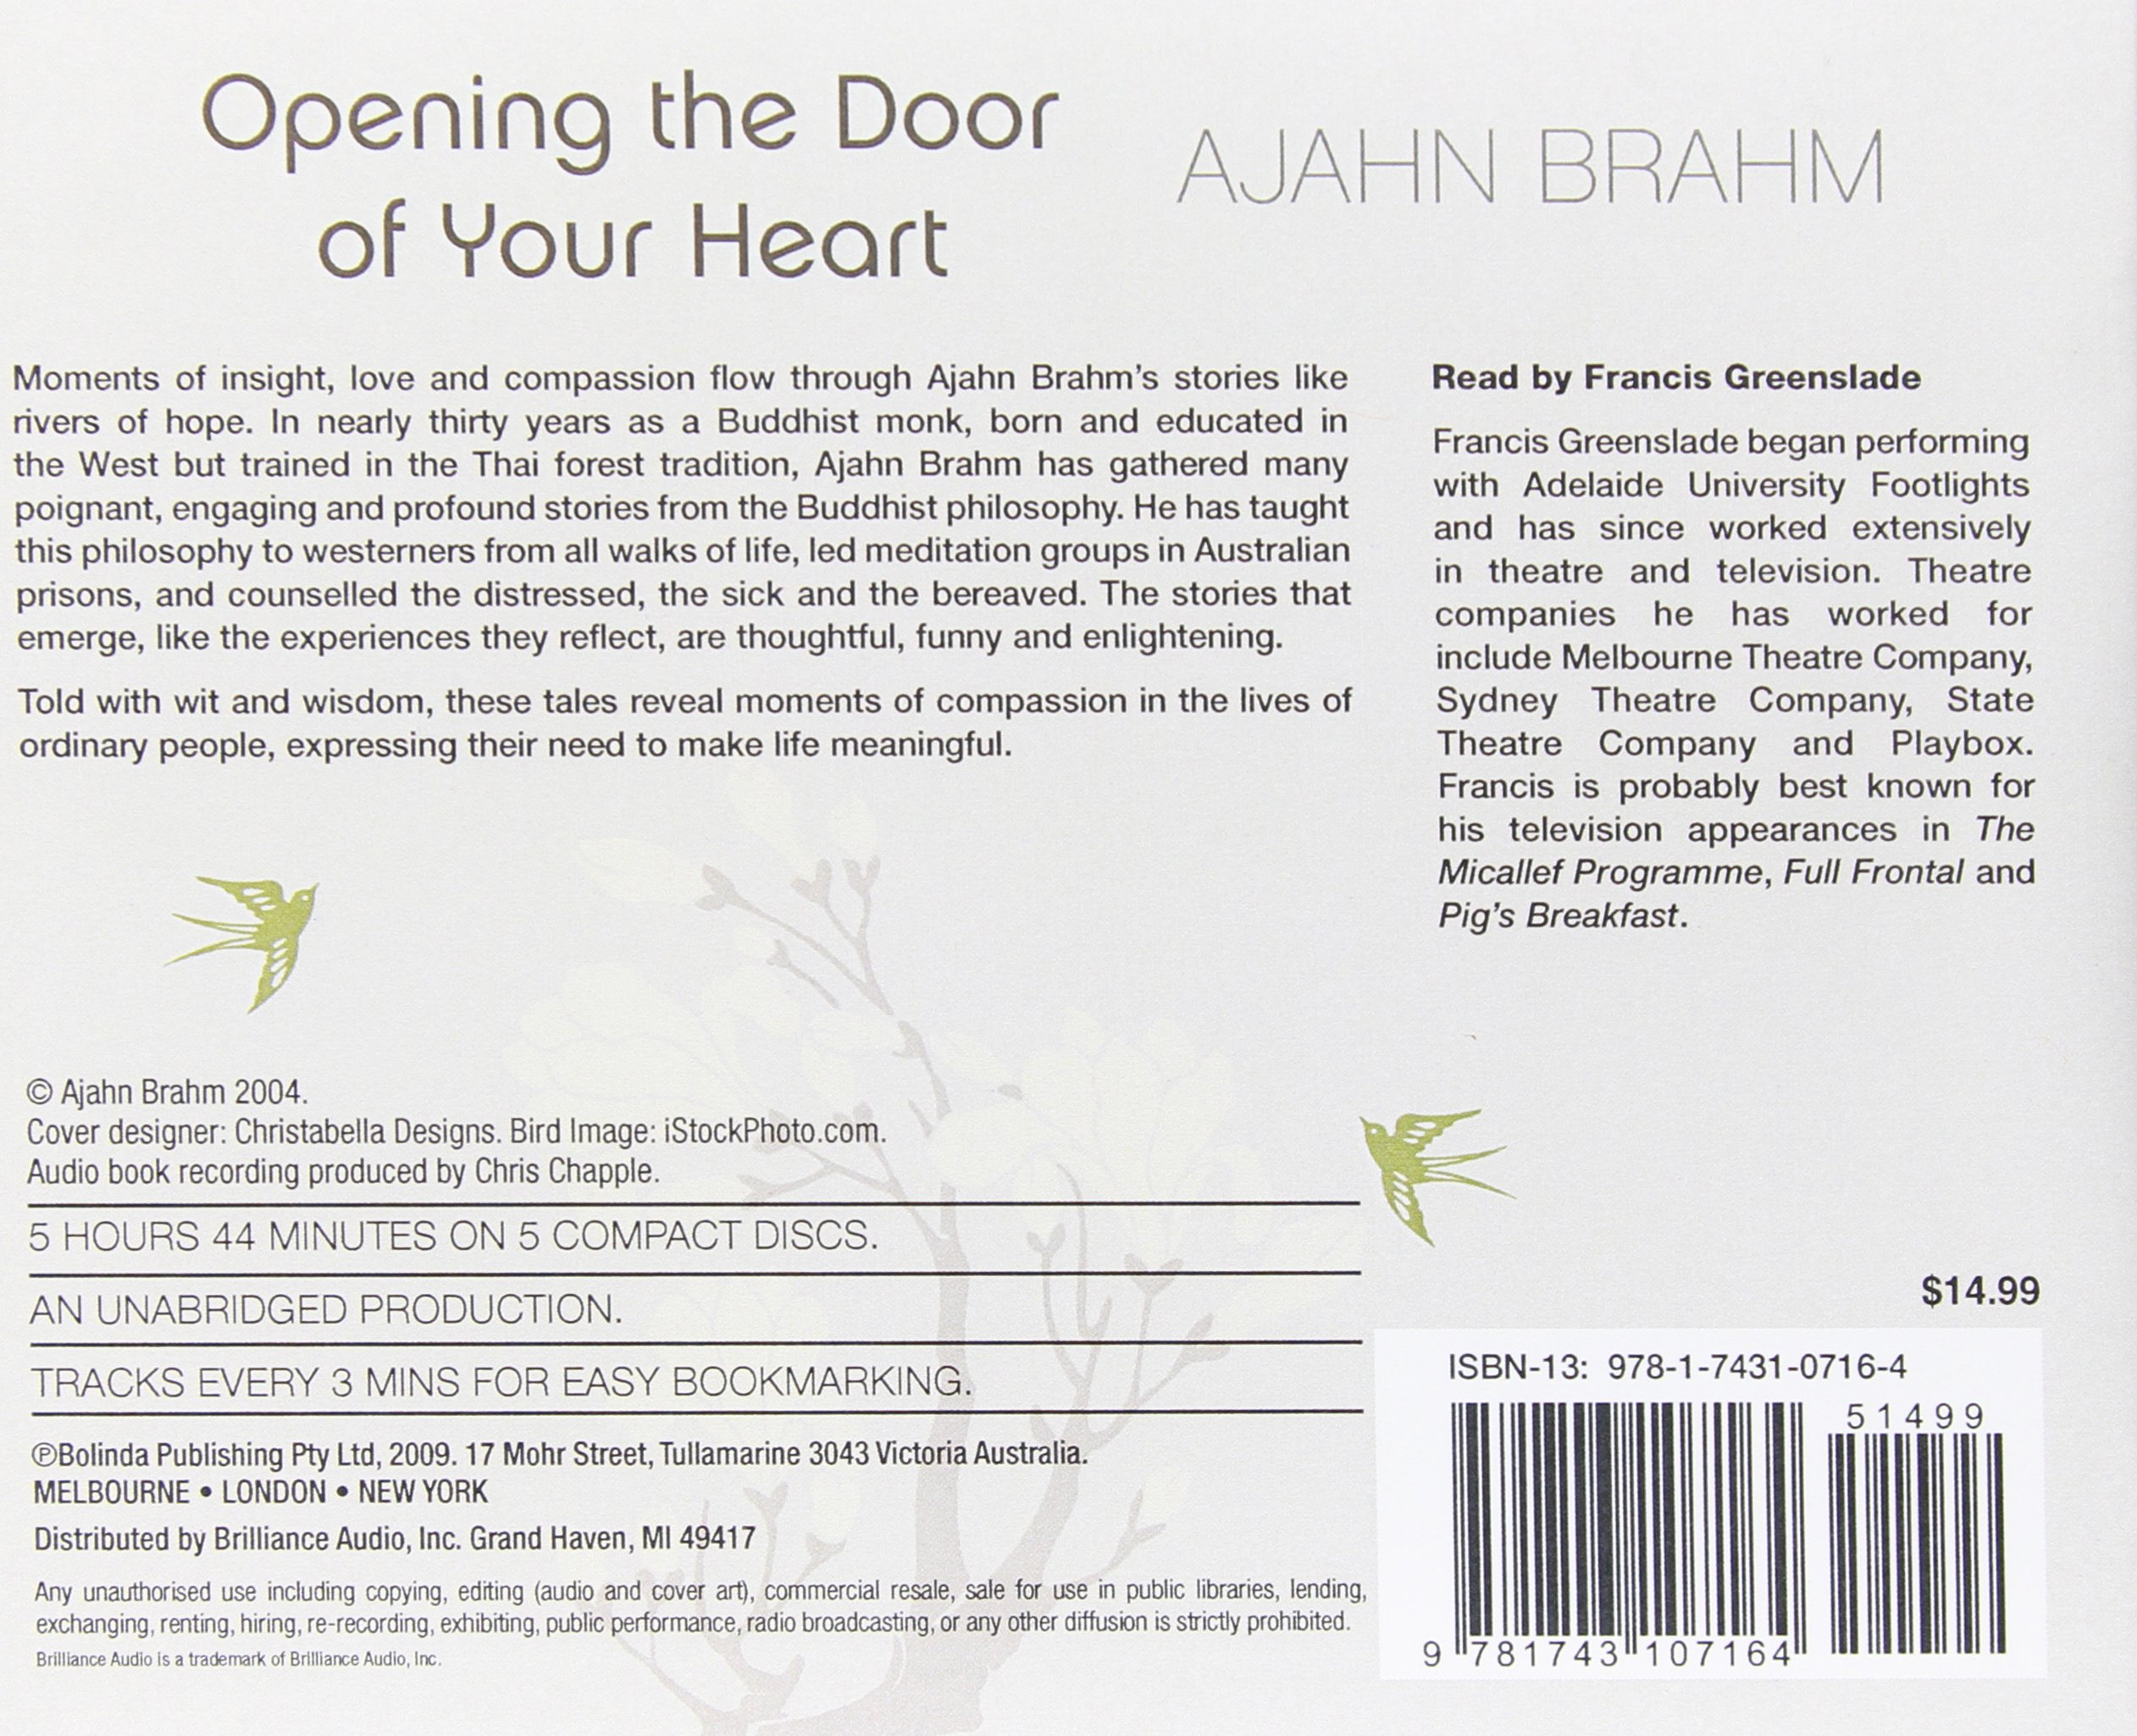 Opening The Door Of Your Heart By Ajahn Brahm Ebook